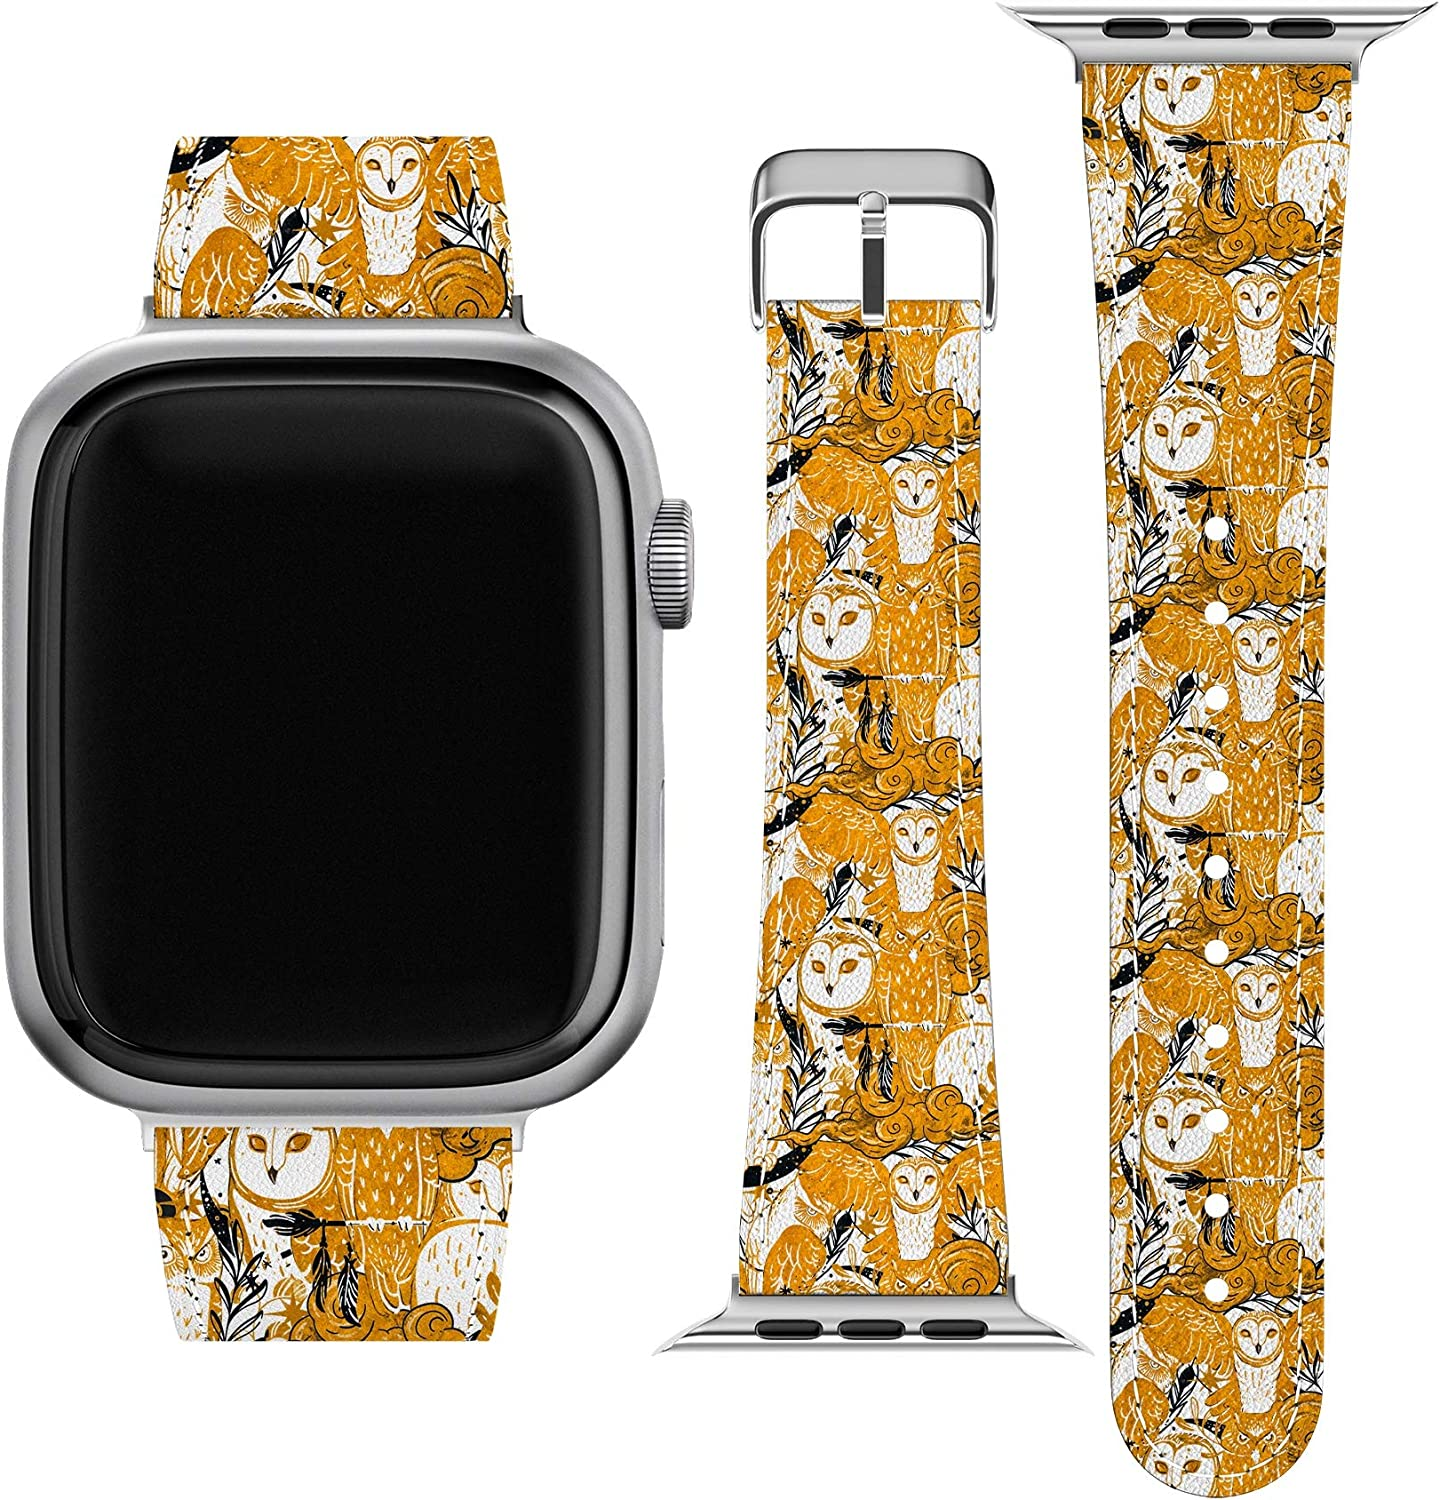 Lex Altern Band Compatible with Apple Watch Series 6 SE 5 4 3 2 1 38mm 40mm 42mm 44mm Golden Birds Barn Owls Wristband Celestial Replacement Strap for iWatch Vegan Leather Stylish Moon Abstract wh168